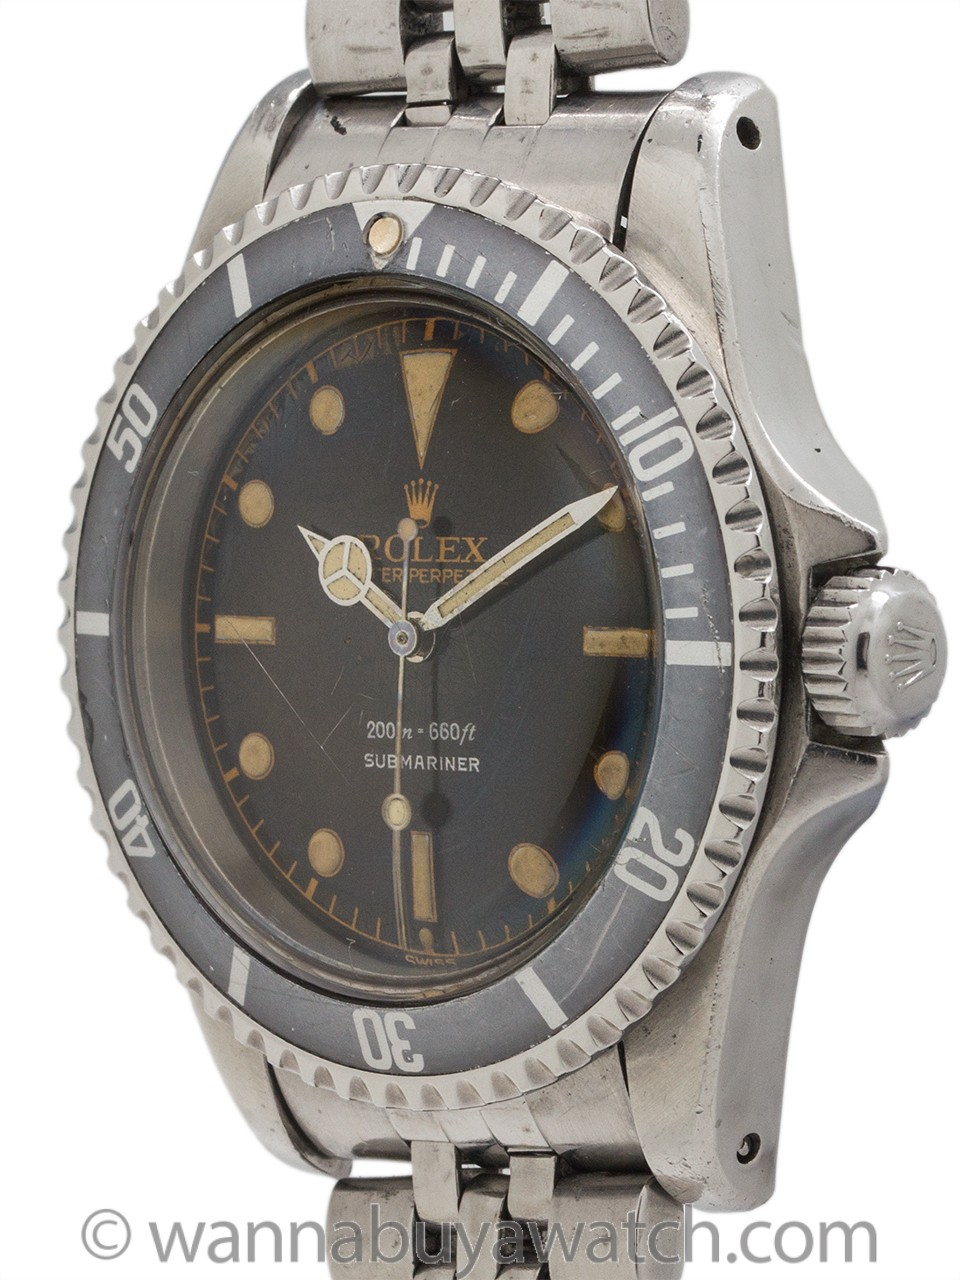 Rolex Submariner ref 5513 PCG Gilt Minute Track Tropical 1962 Exceptional!